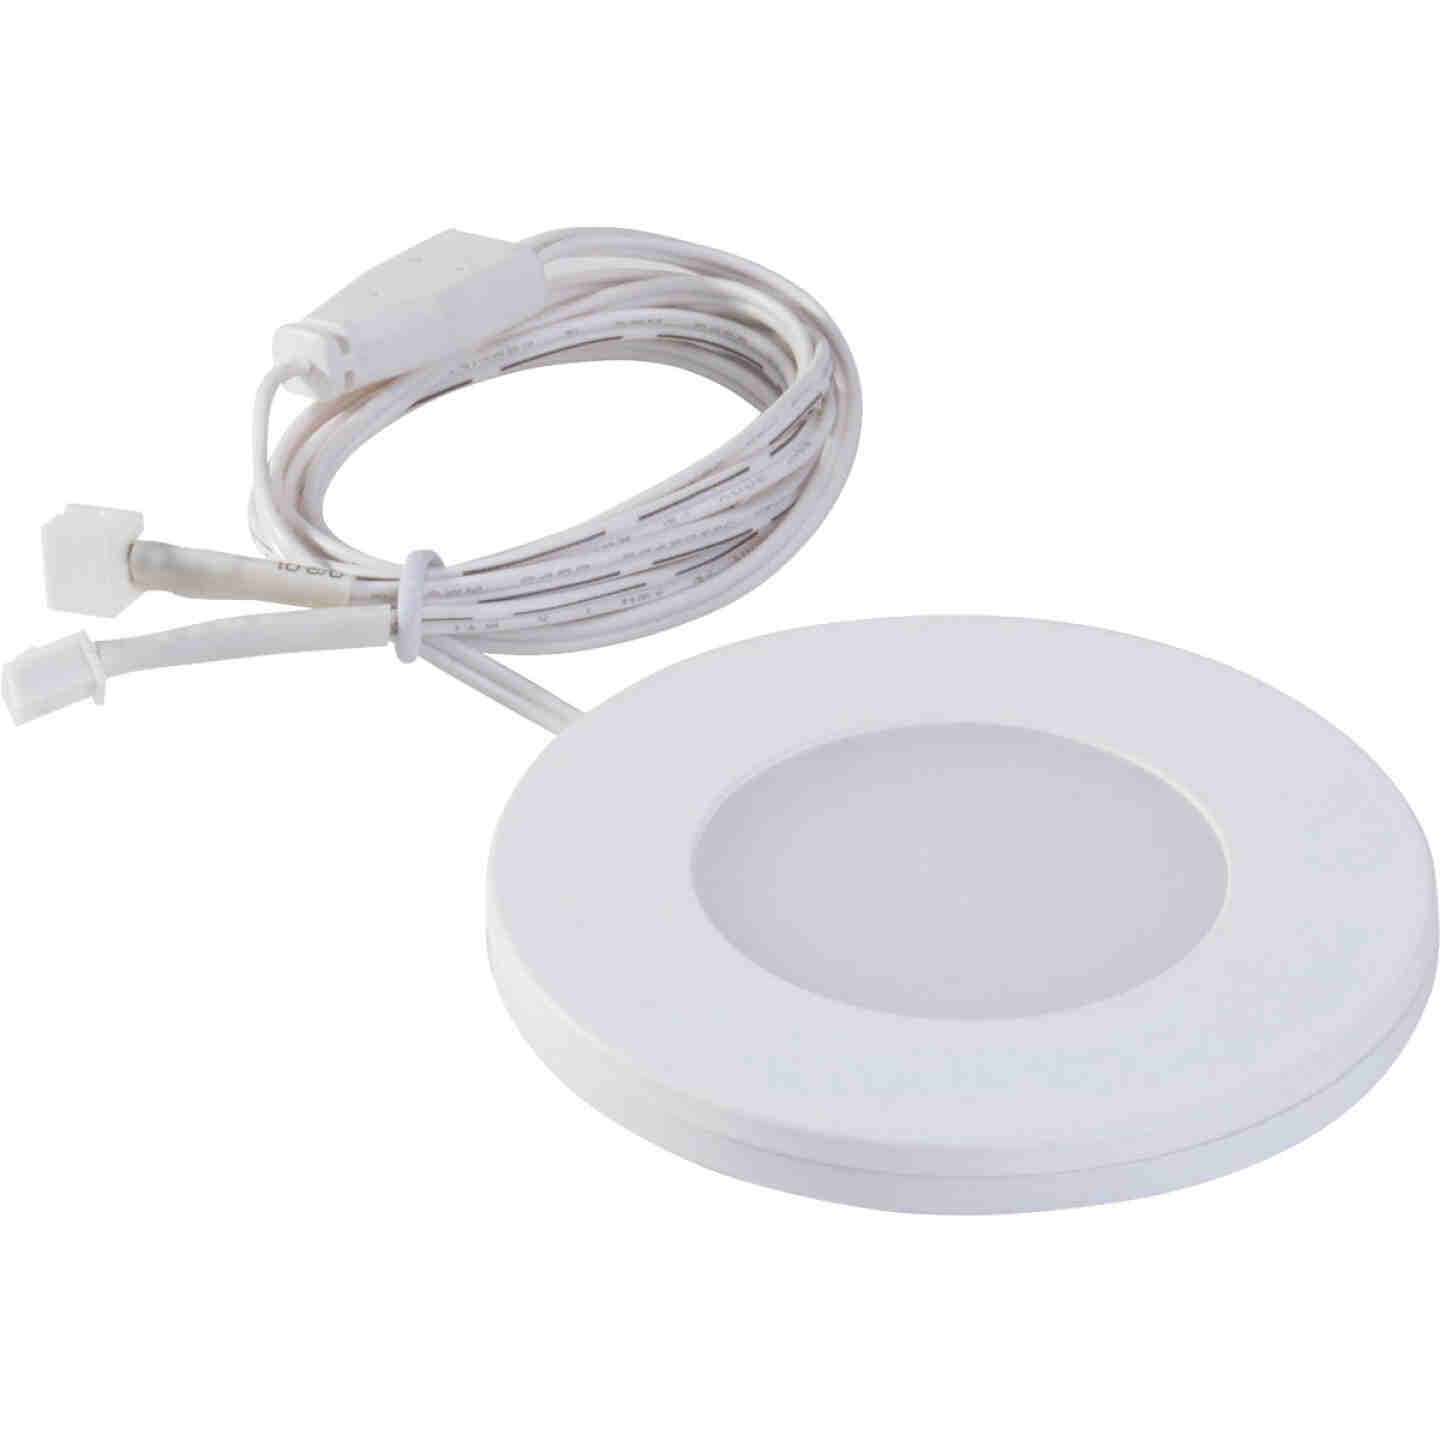 Liteline 3 In. Dia. X 1/4 In. Thick Plug-In White LED Under Cabinet Puck Light Image 3